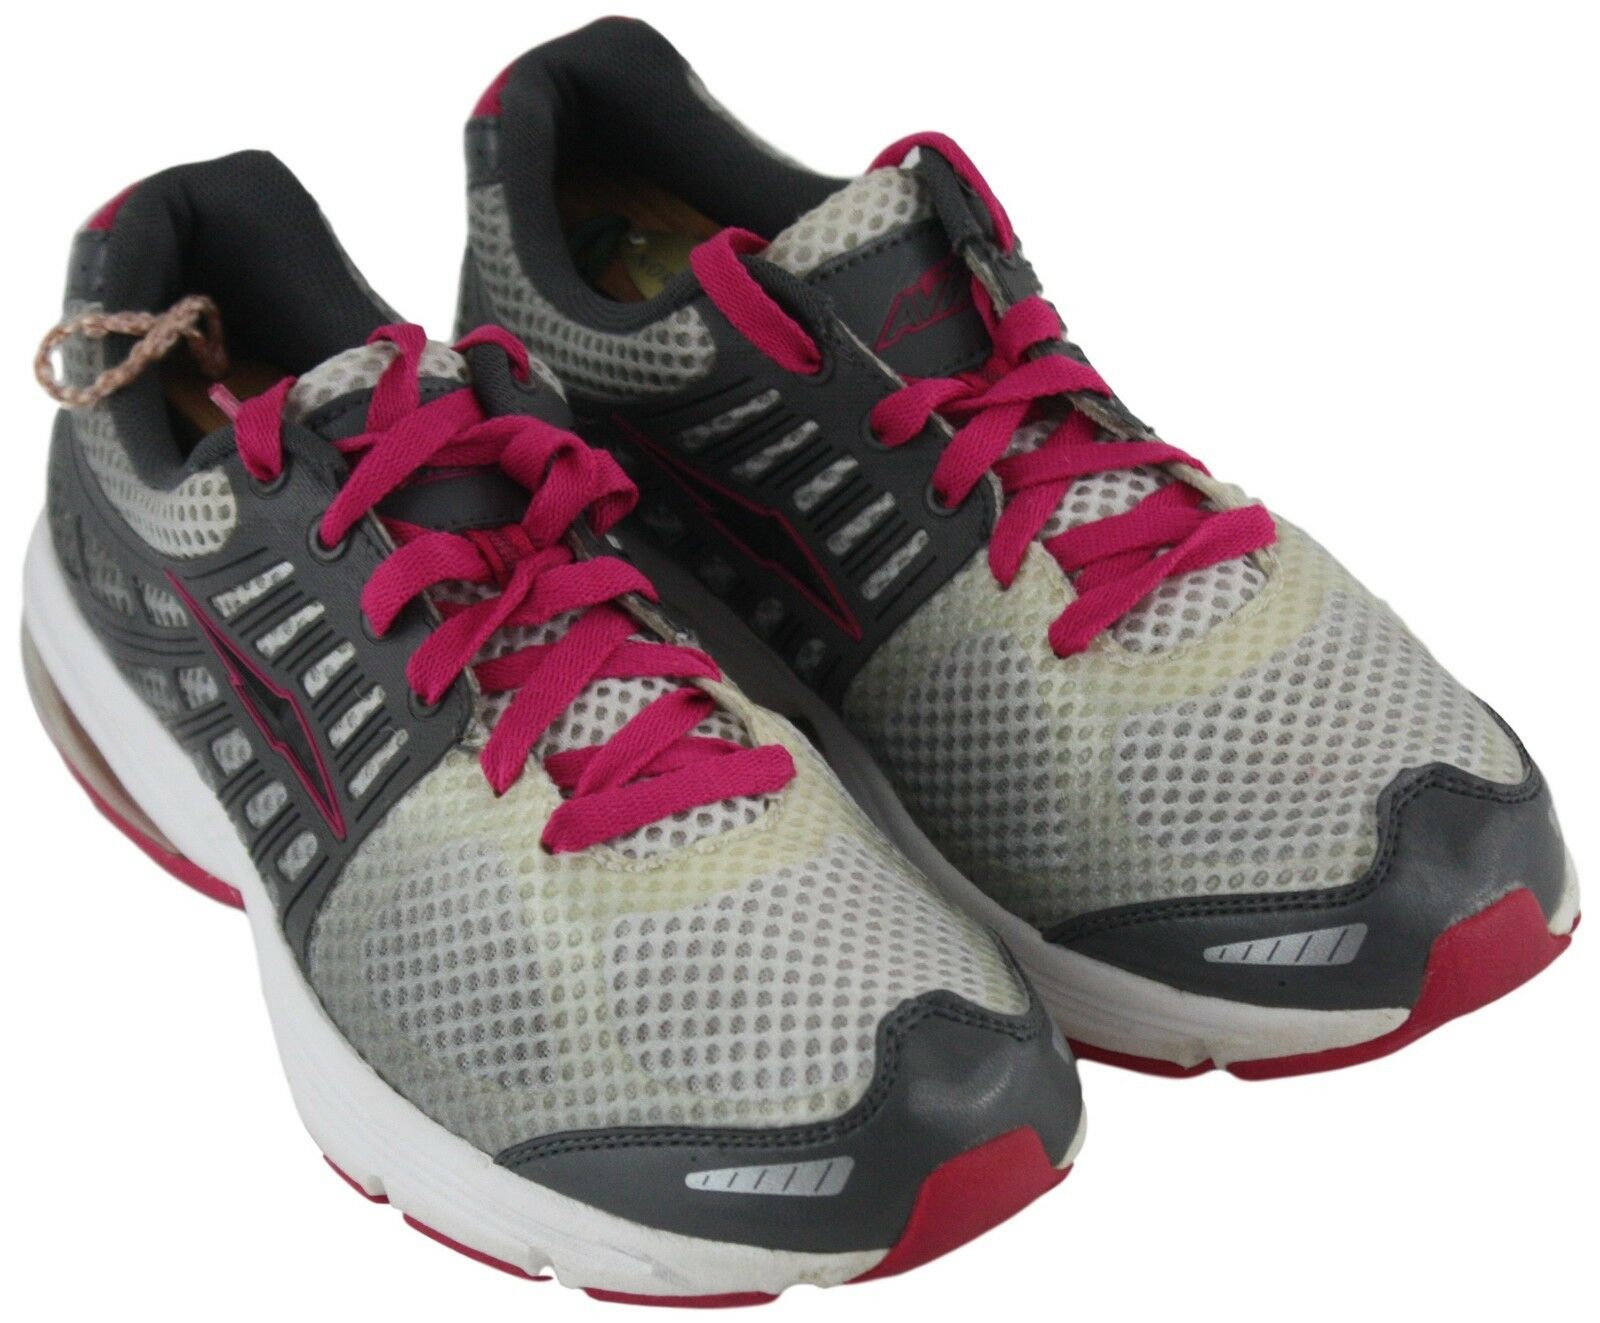 Avia Womens Ladies AVI 180 Grey Shoes Pink Lace Up Athletic Shoes Grey Sneakers Size 8.5 64a799